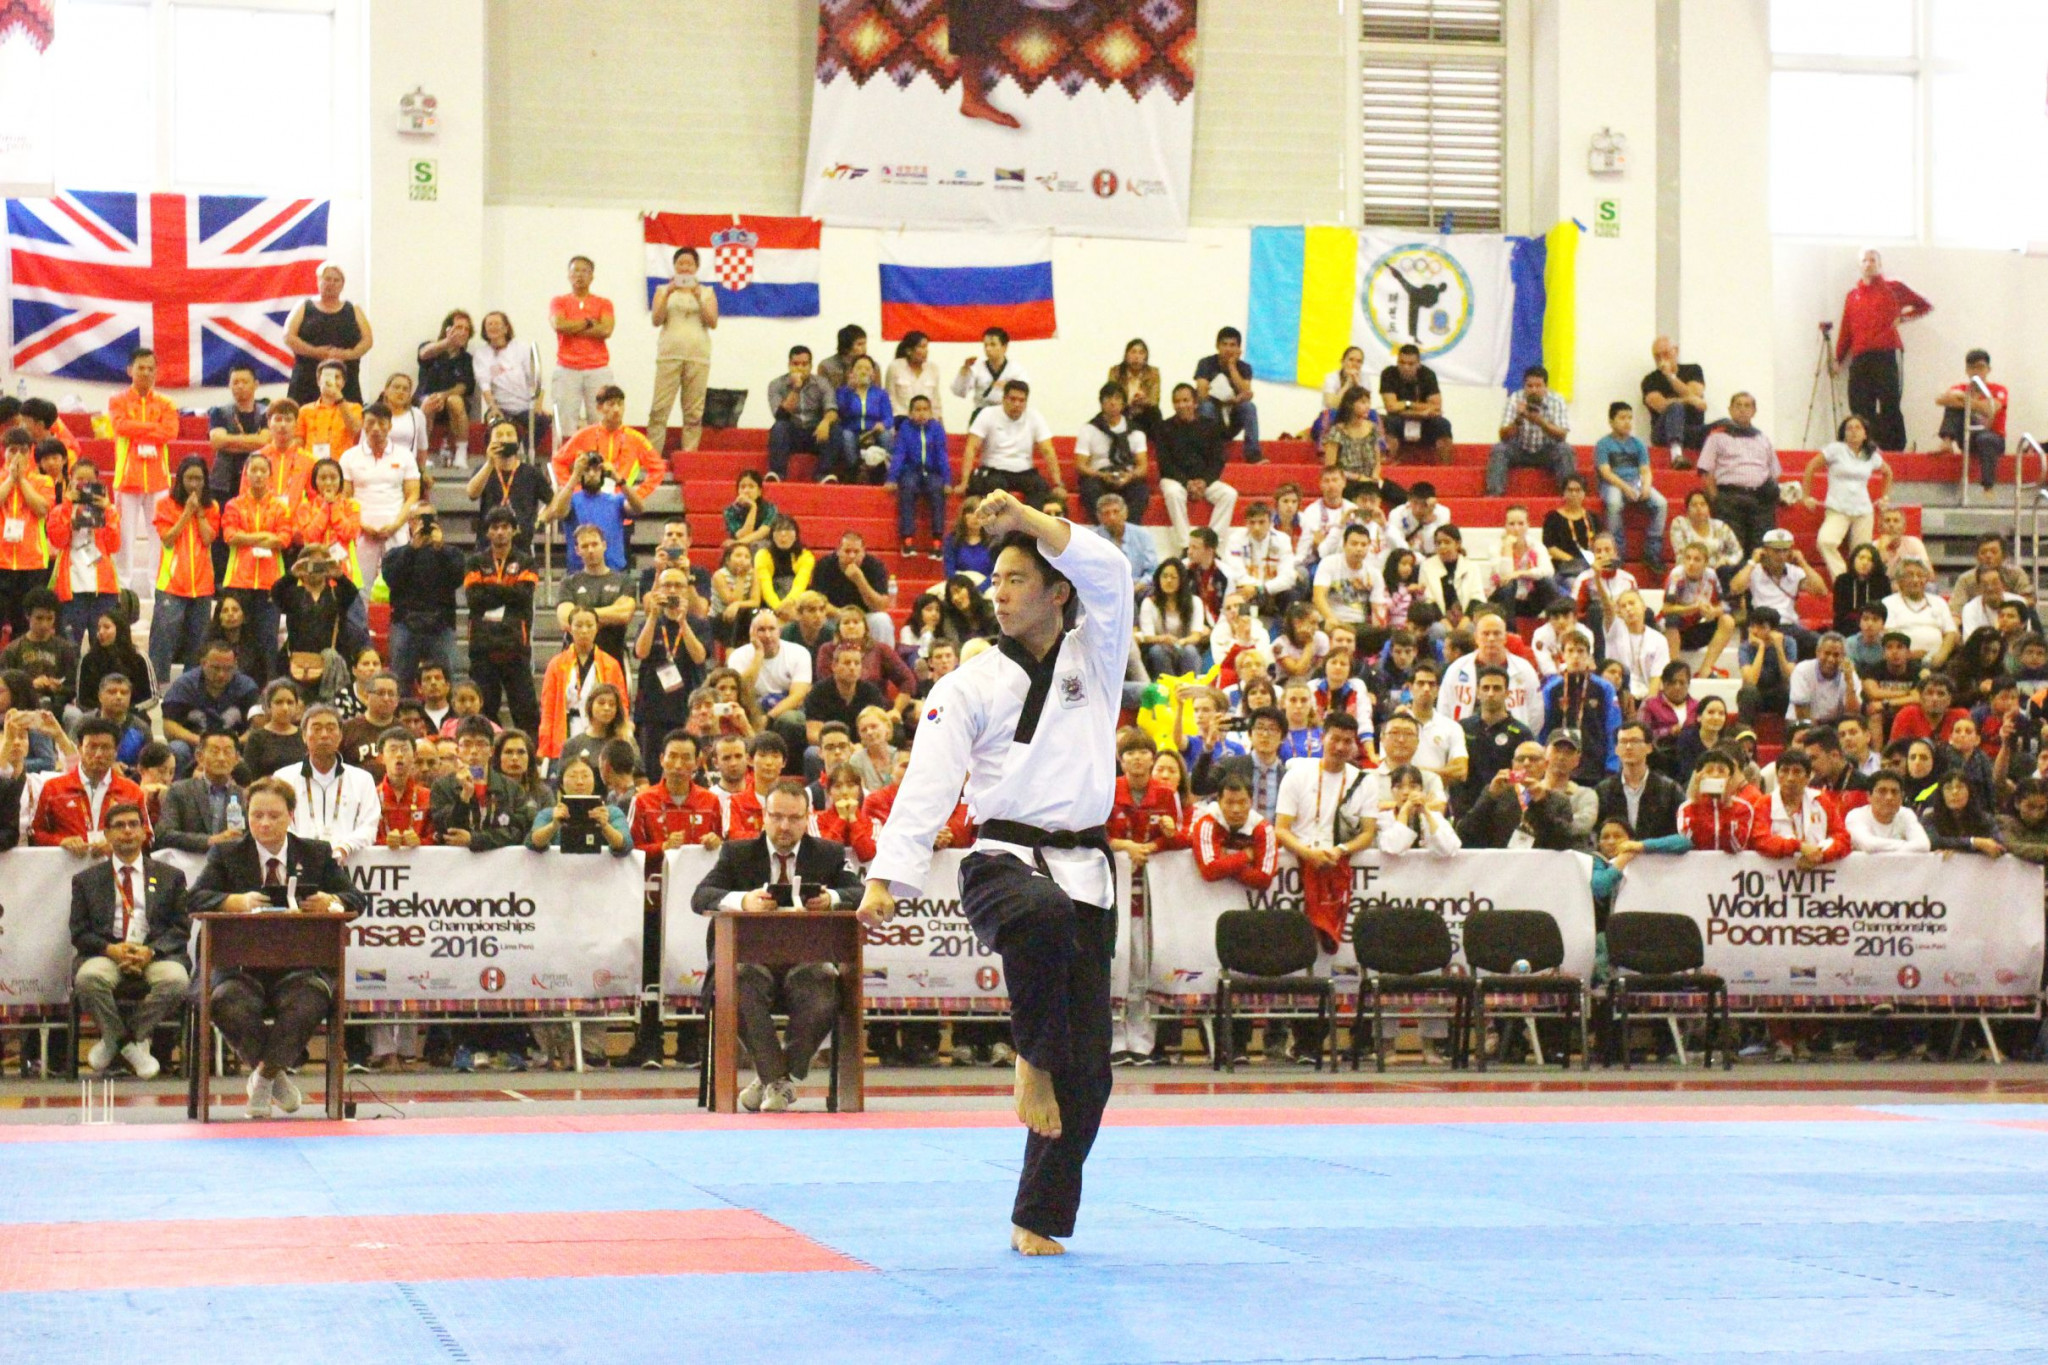 A total of 1,274 from 59 countries will participate in the World Taekwondo Poomsae Championships starting tomorrow in Chinese Taipei ©WT